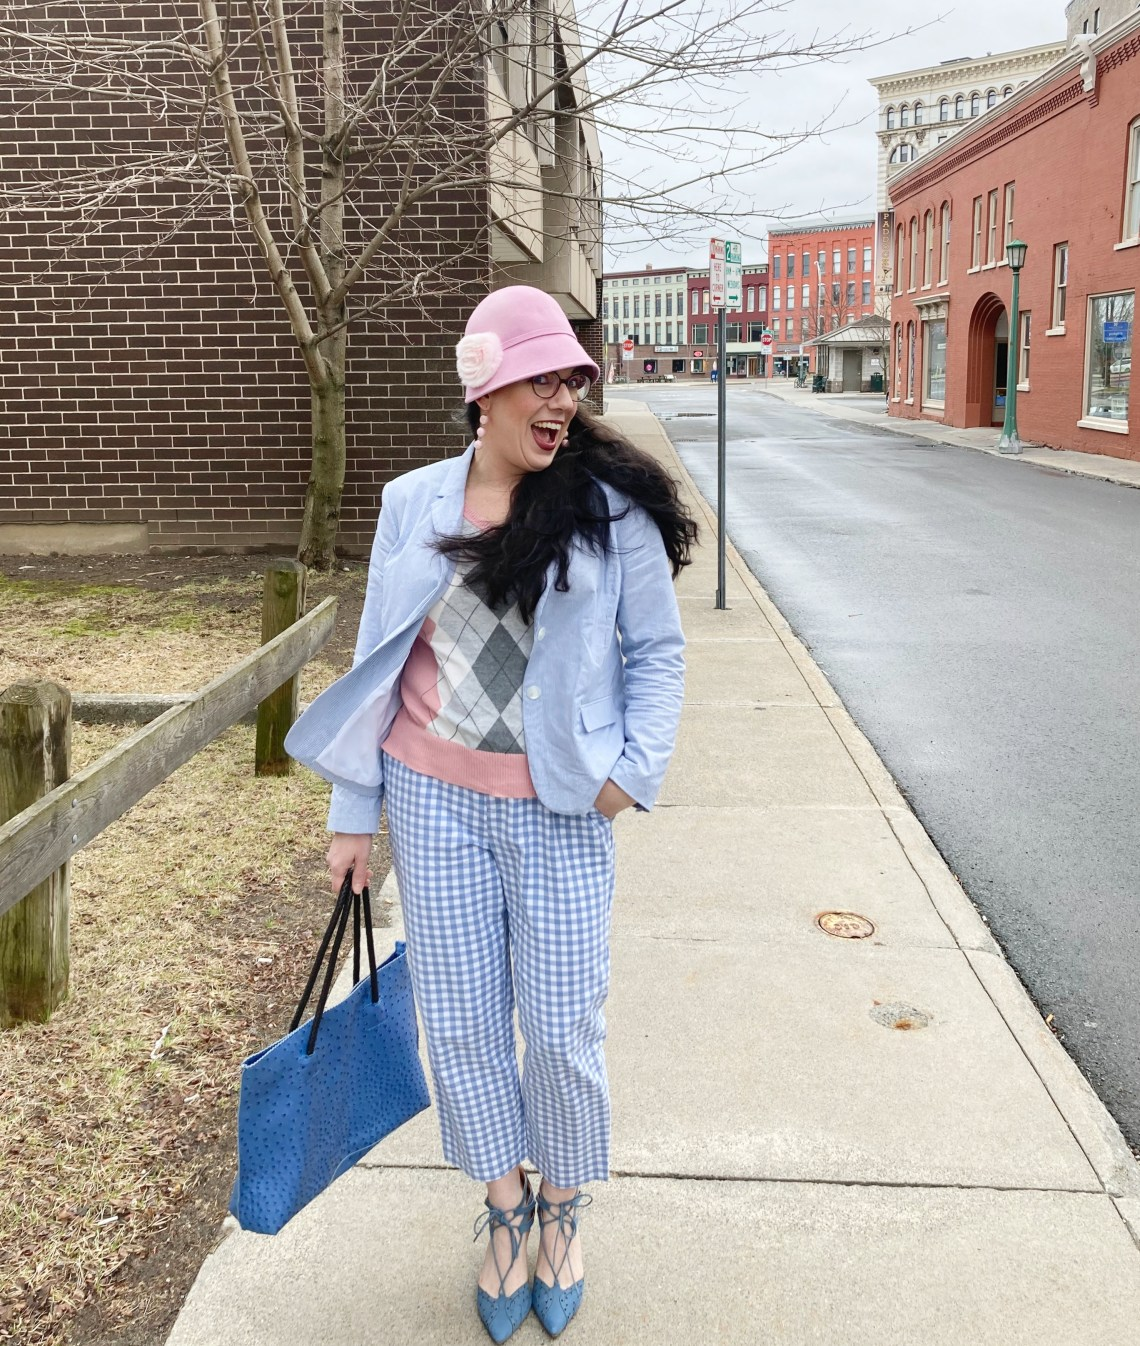 seersucker, gingham, argyle, pastels, print mix, Easter outfit, cloche hat, fashion over 40, Shelbee on the Edge